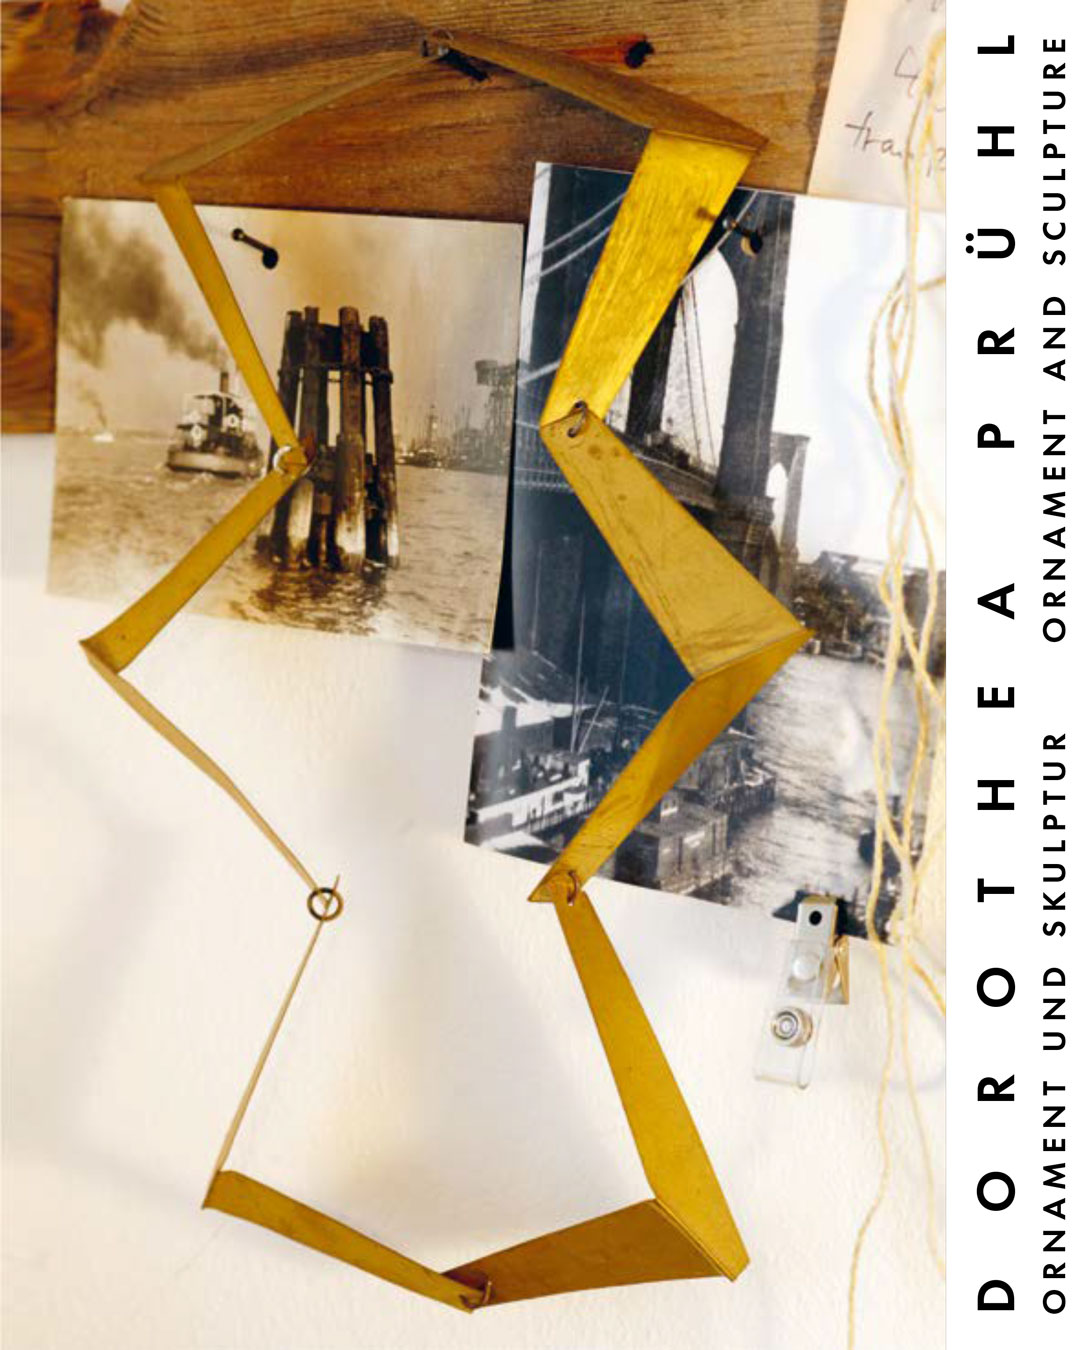 Ornament and Sculpture - book 2020 - see: >PUBLICATIONS>BOOKS